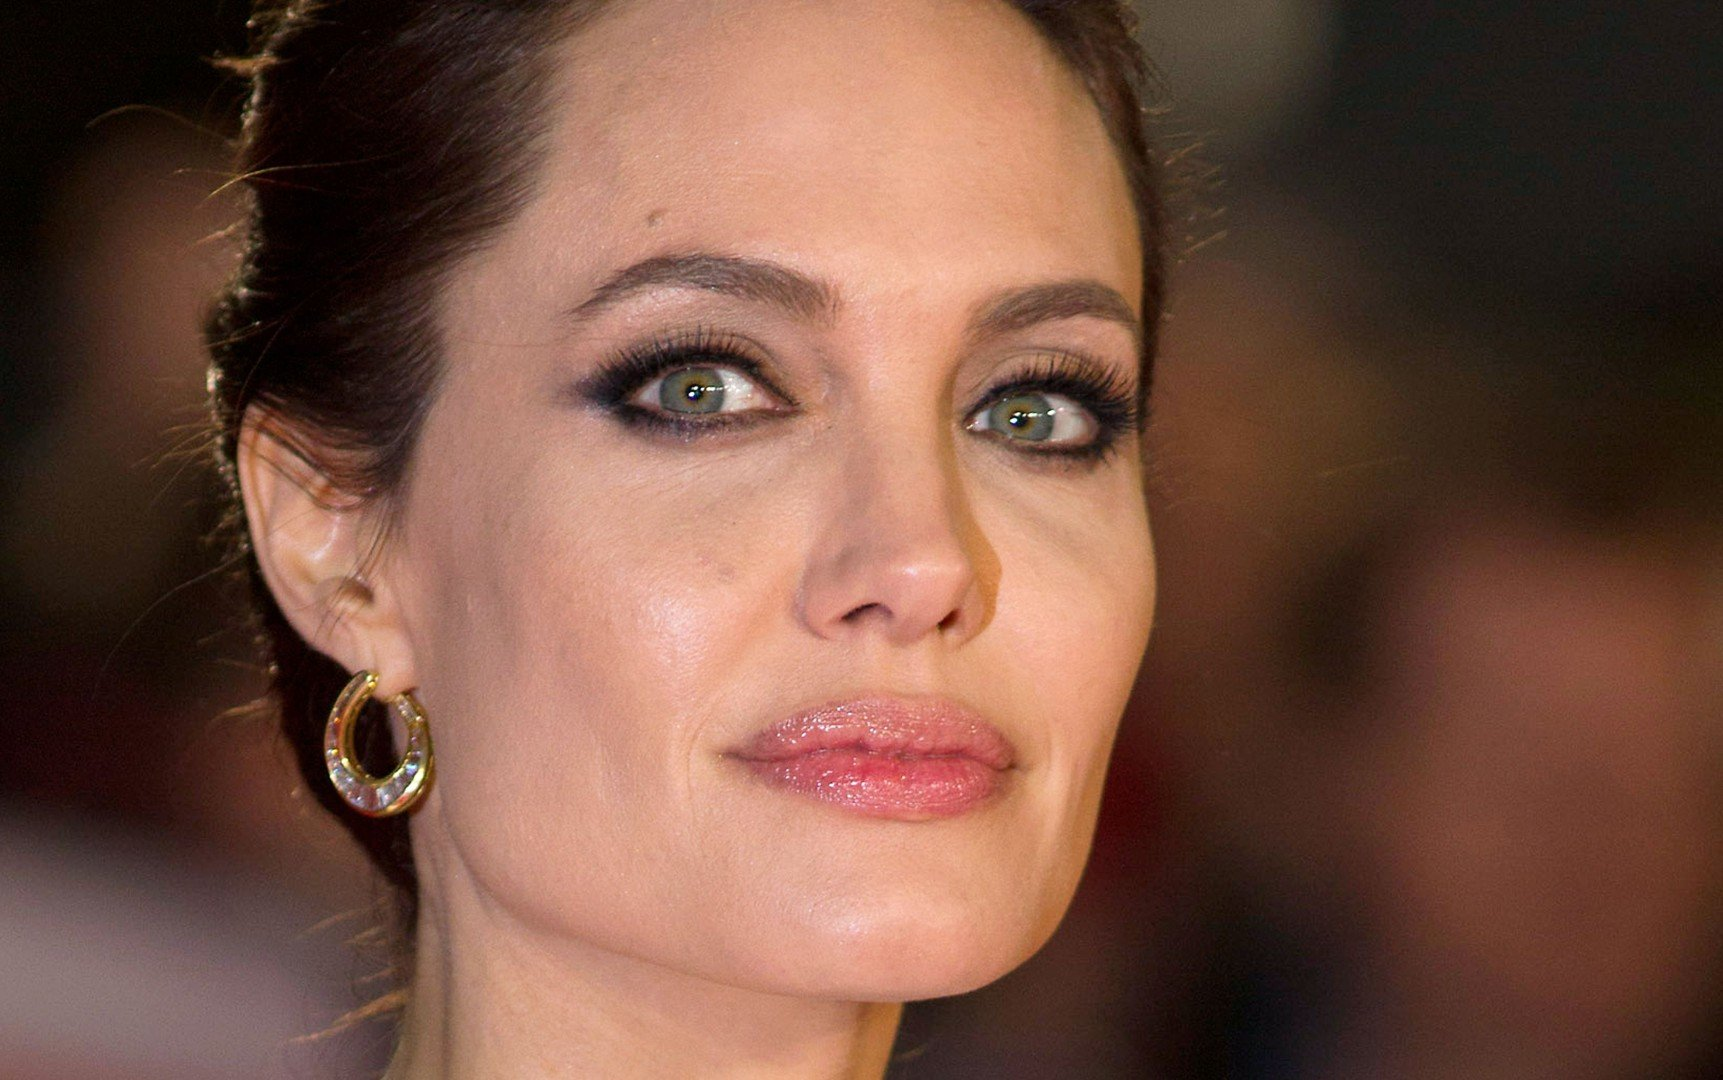 a79c63dd96ad Angelina Jolie s fine work as a role model